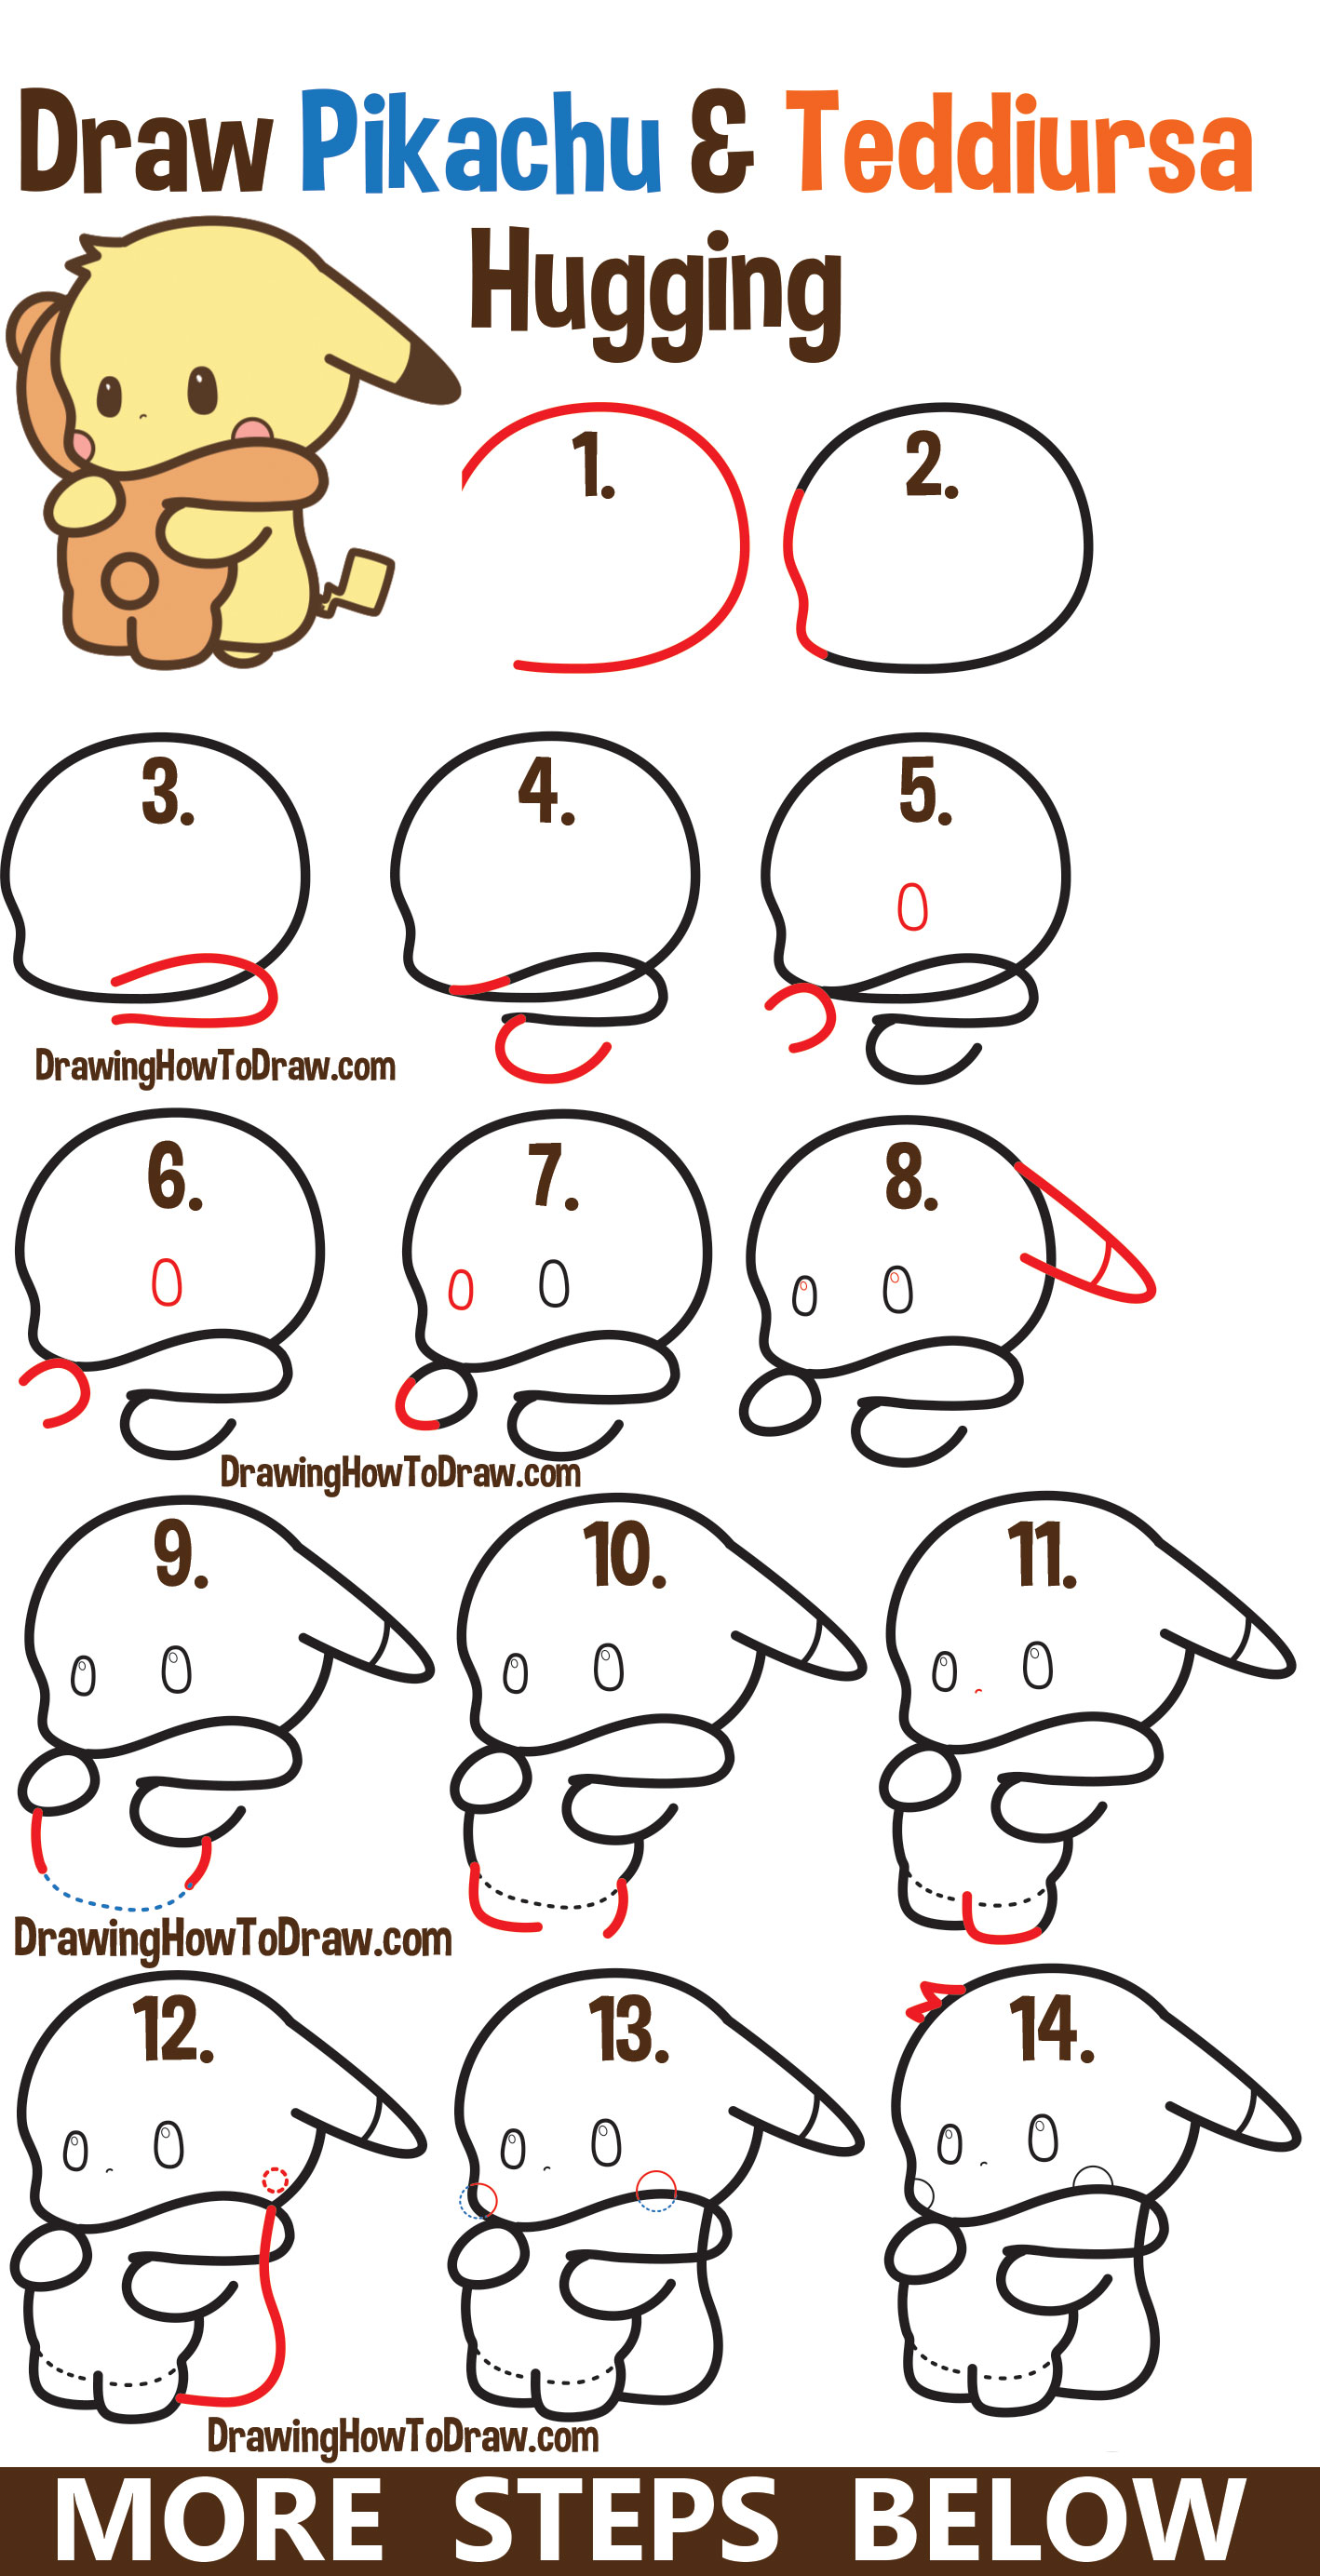 How to draw a cute kawaii pikachu and teddiursa pokemon hugging simple steps drawing lesson for kids